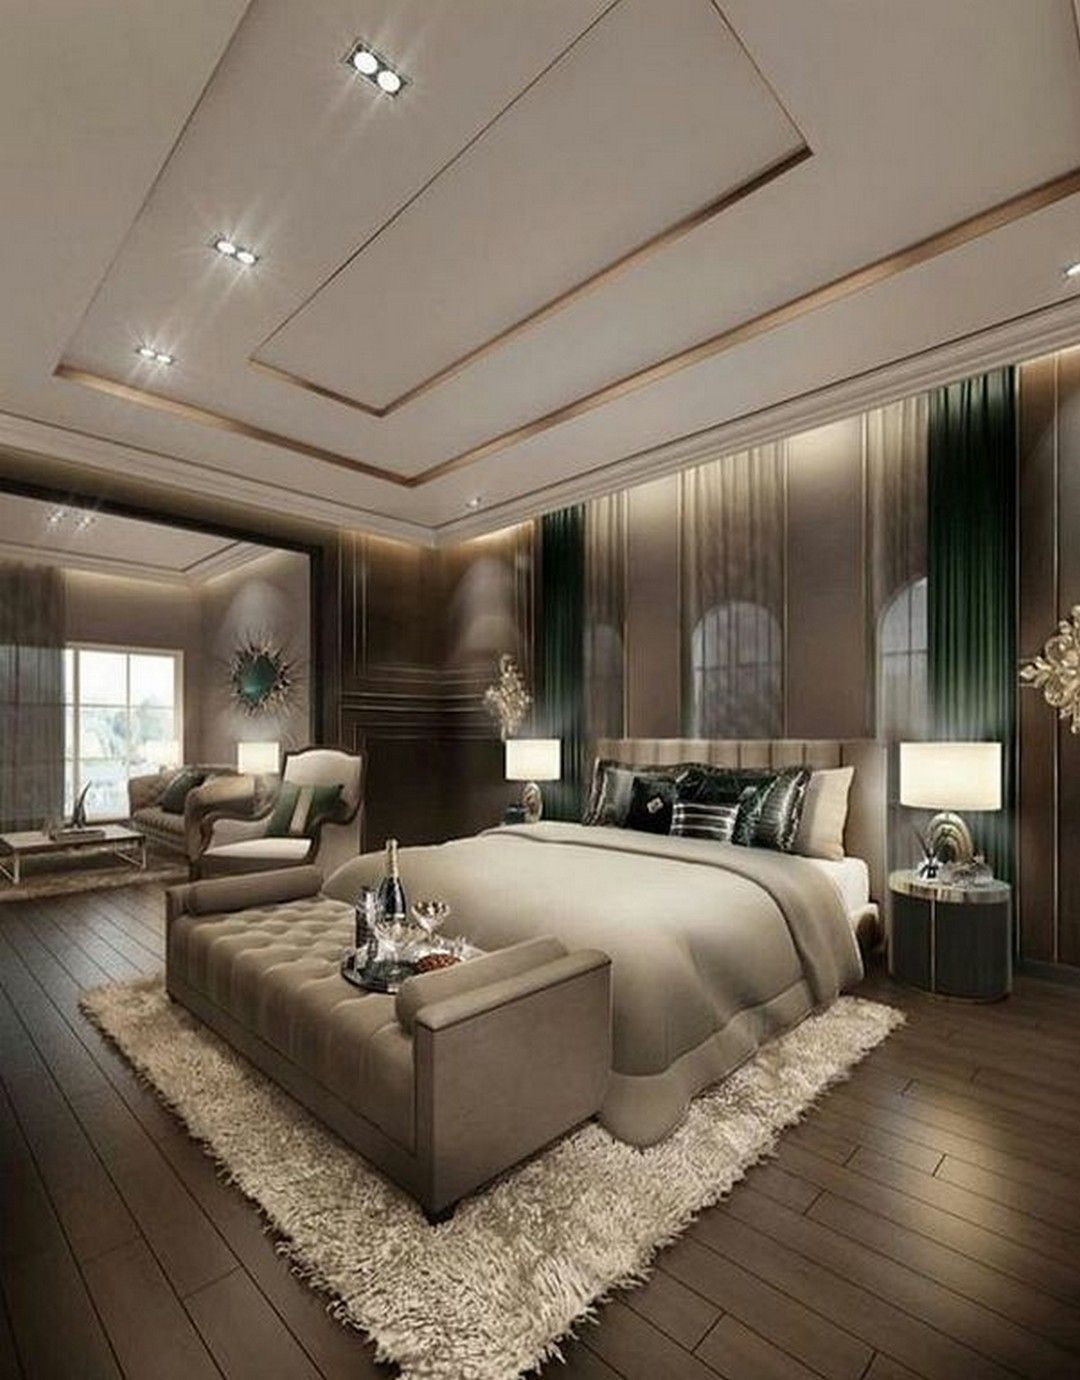 10 Great Ideas Of Traditional Bedroom Home Decors To Copy In Your Home Goodnewsarchitecture Luxusschlafzimmer Luxus Schlafzimmer Design Schlafzimmer Design